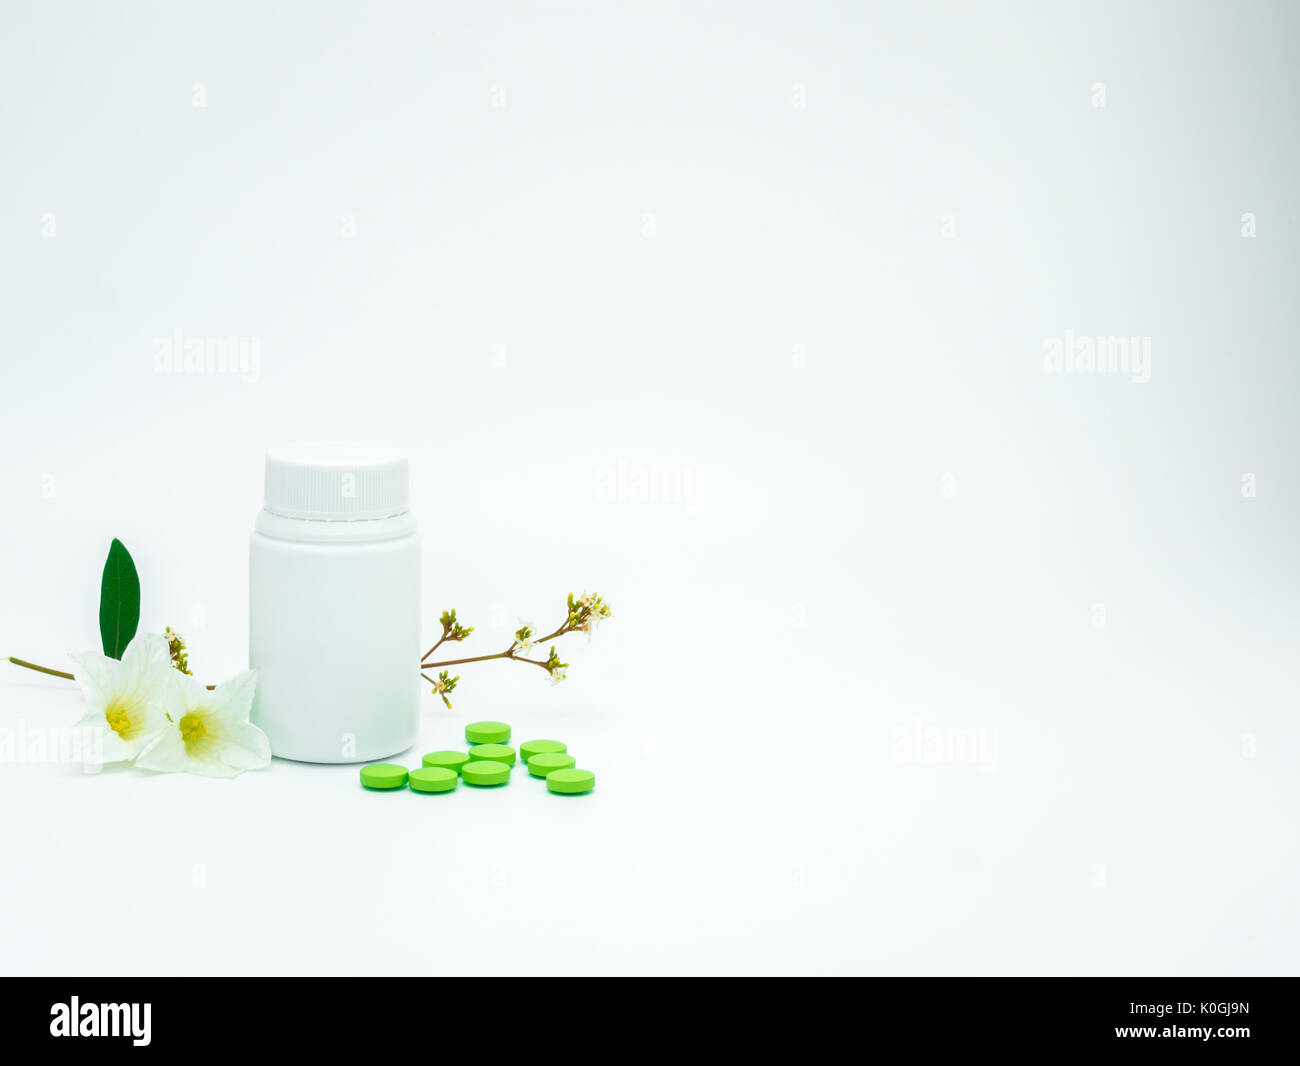 Green vitamin and supplement tablet pills with flower and branch and blank label plastic bottle on white background with copy space, just add your own - Stock Image